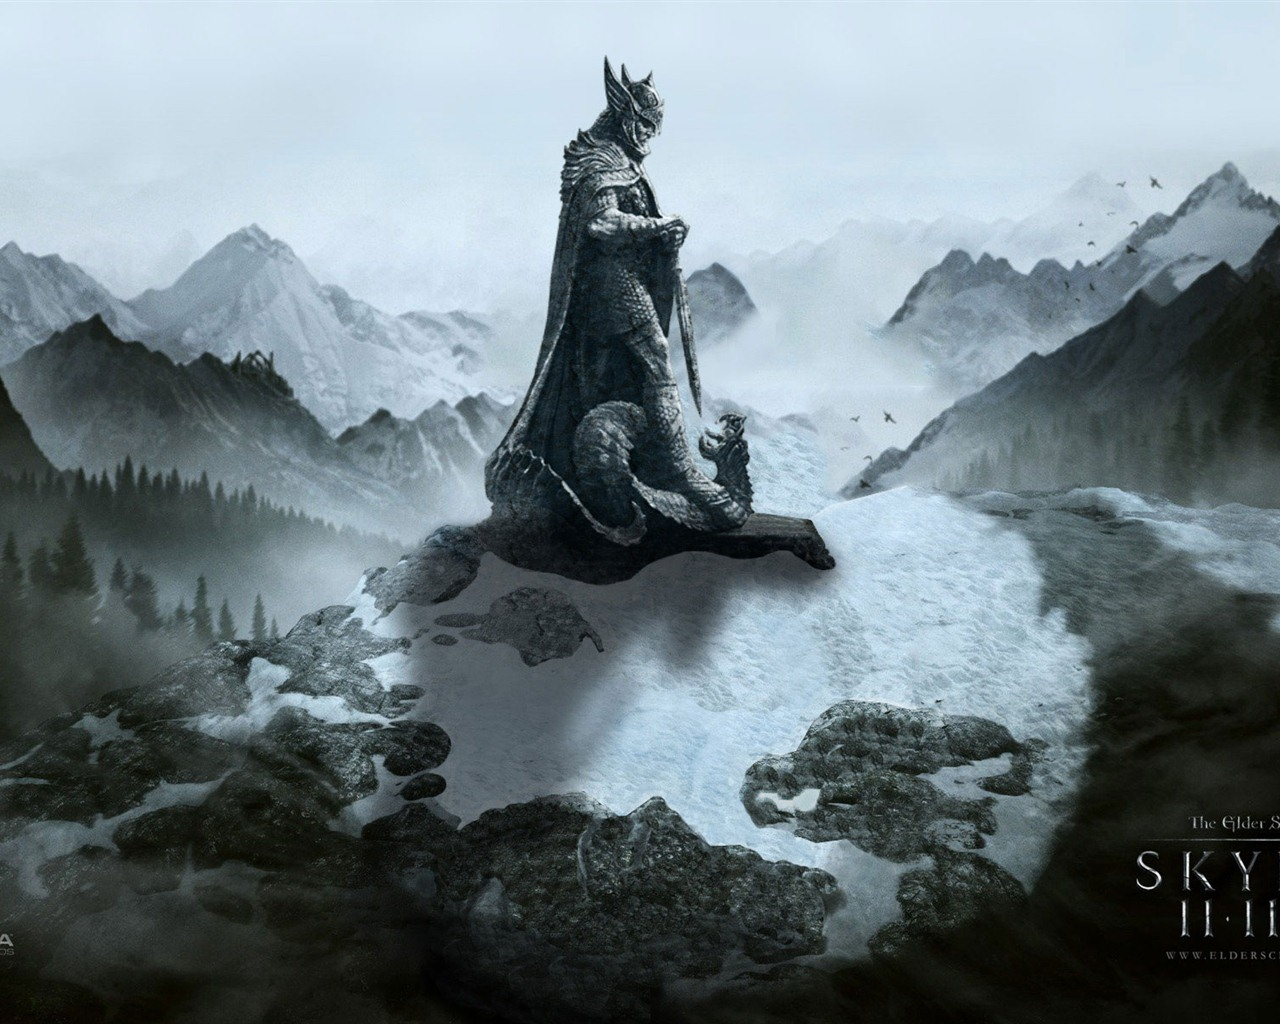 The Elder Scrolls V Skyrim Hd Wallpapers 16 1280x1024 Wallpaper